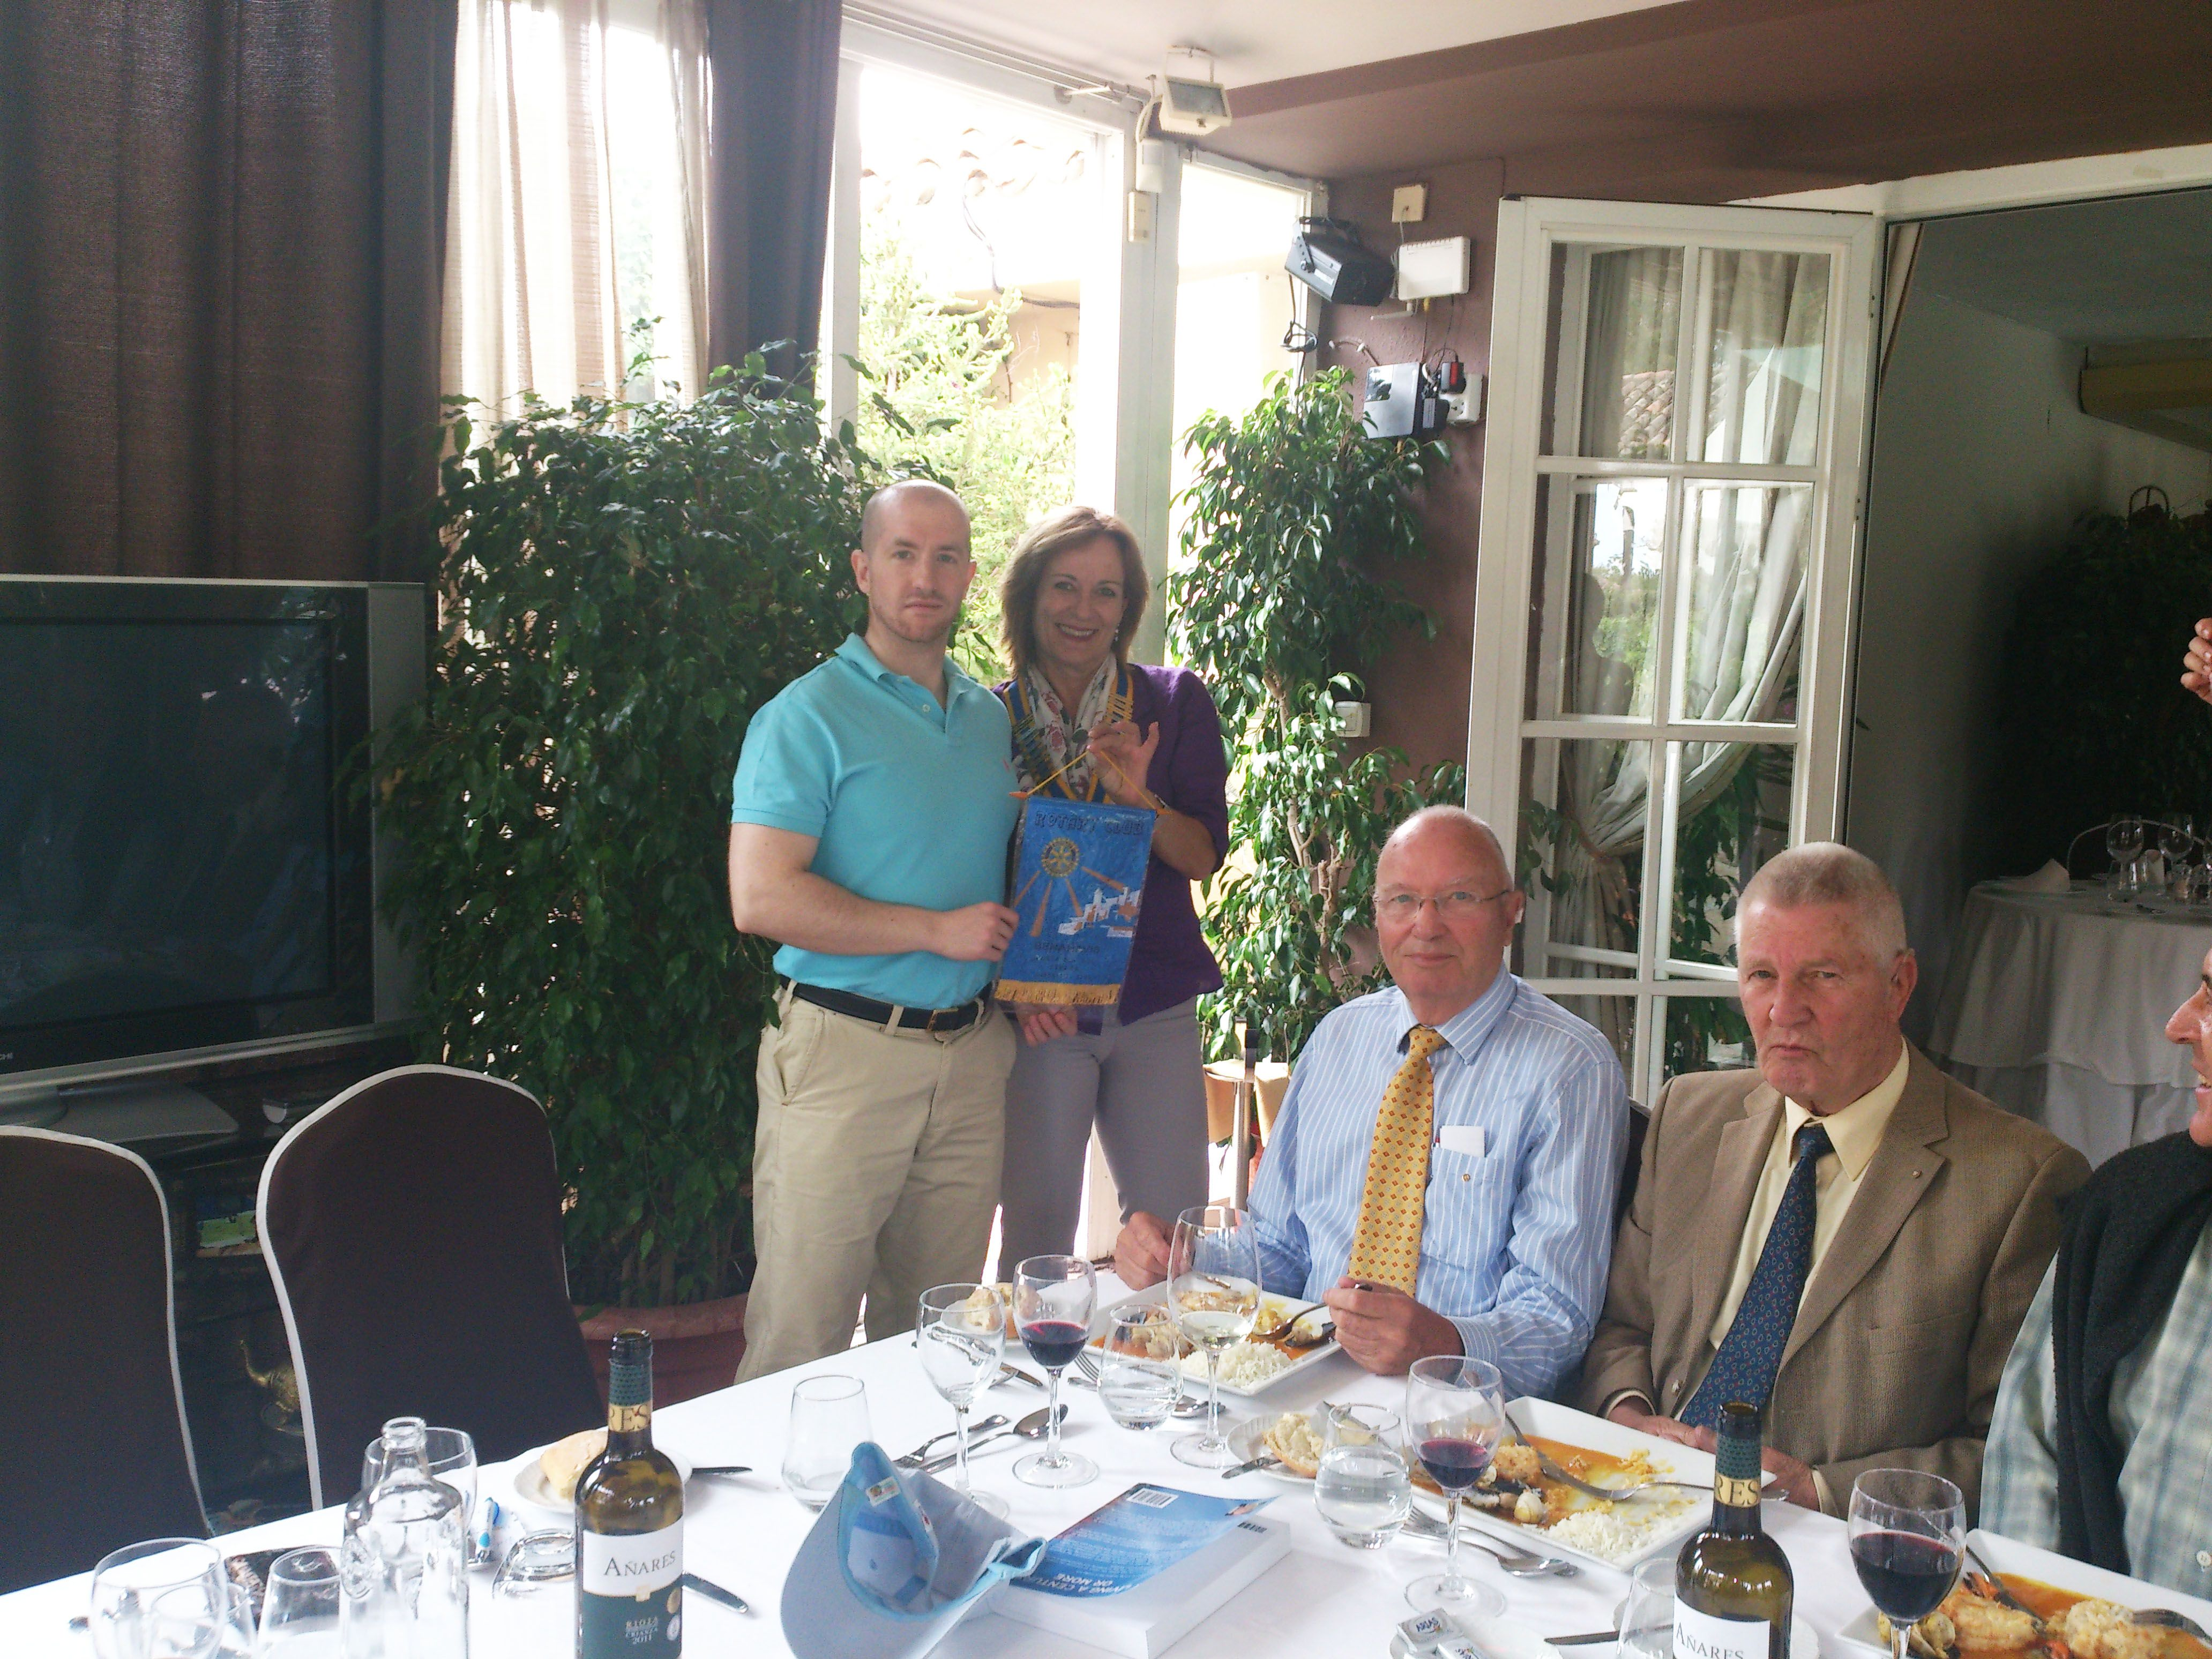 Prince Jorge Rurikovich receives signed badge from President and members of Rotary Club, Marbella, Spain